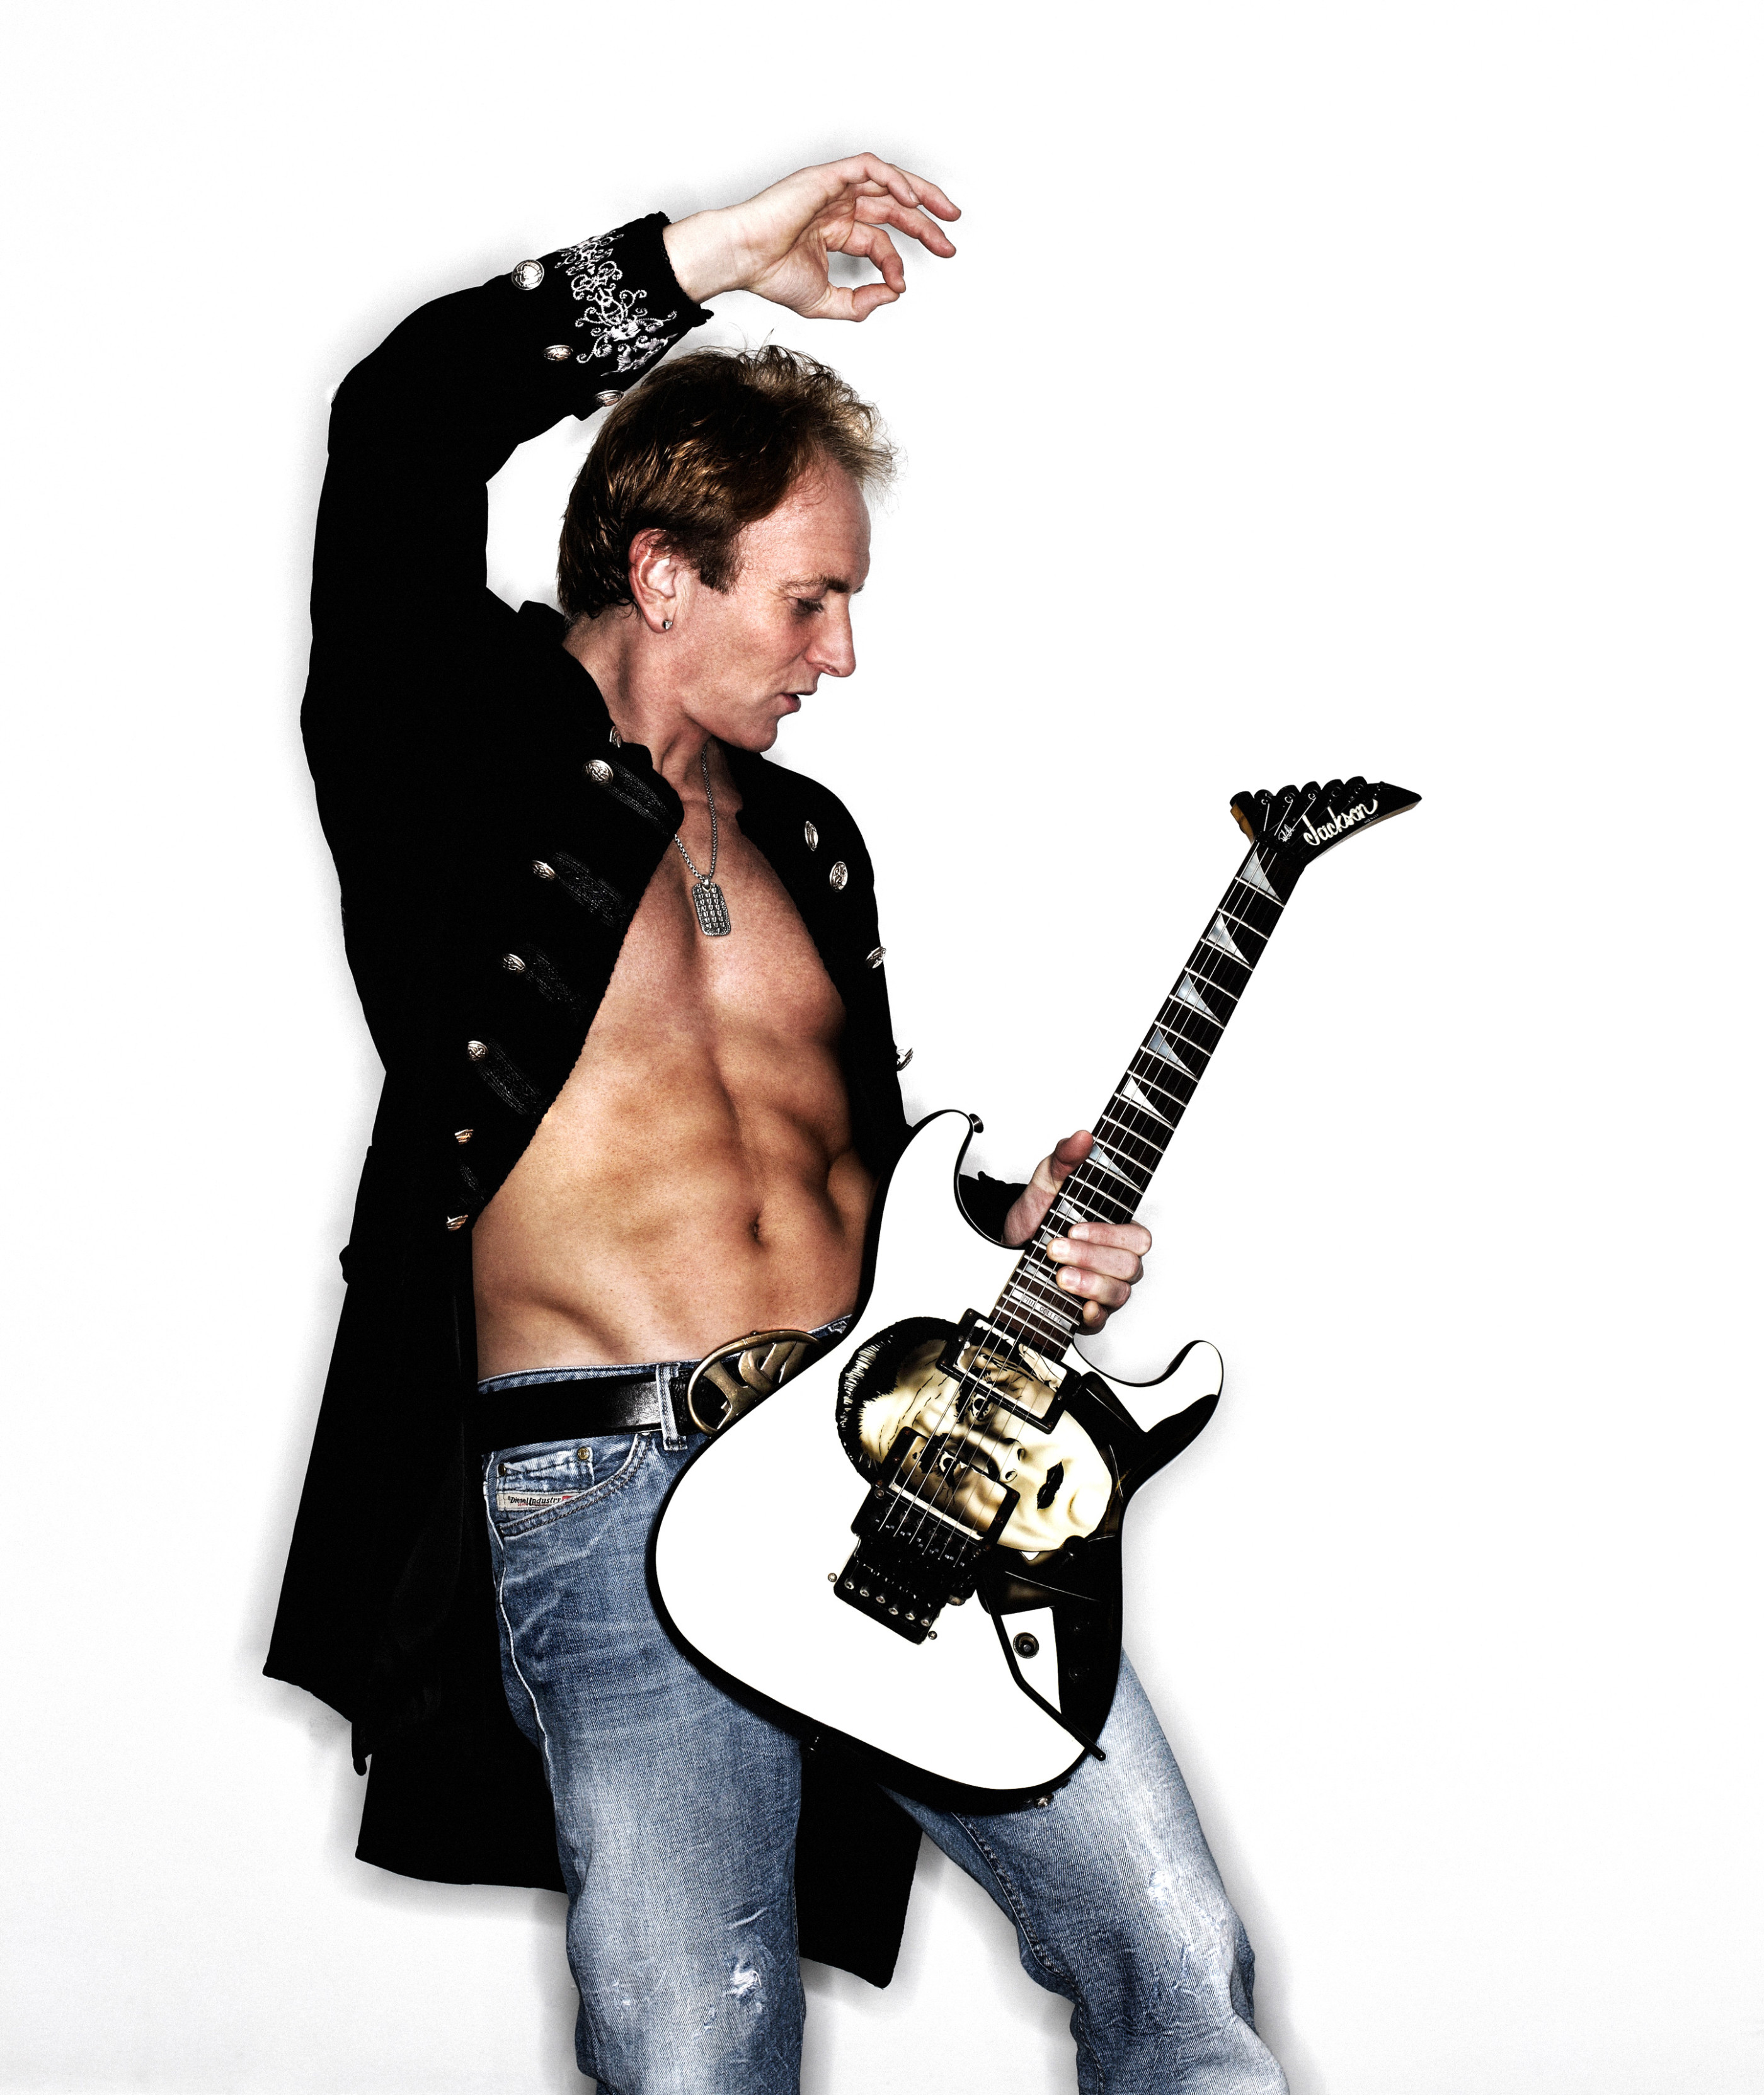 Phil Collen Jackson Bela Lugosi Guitar